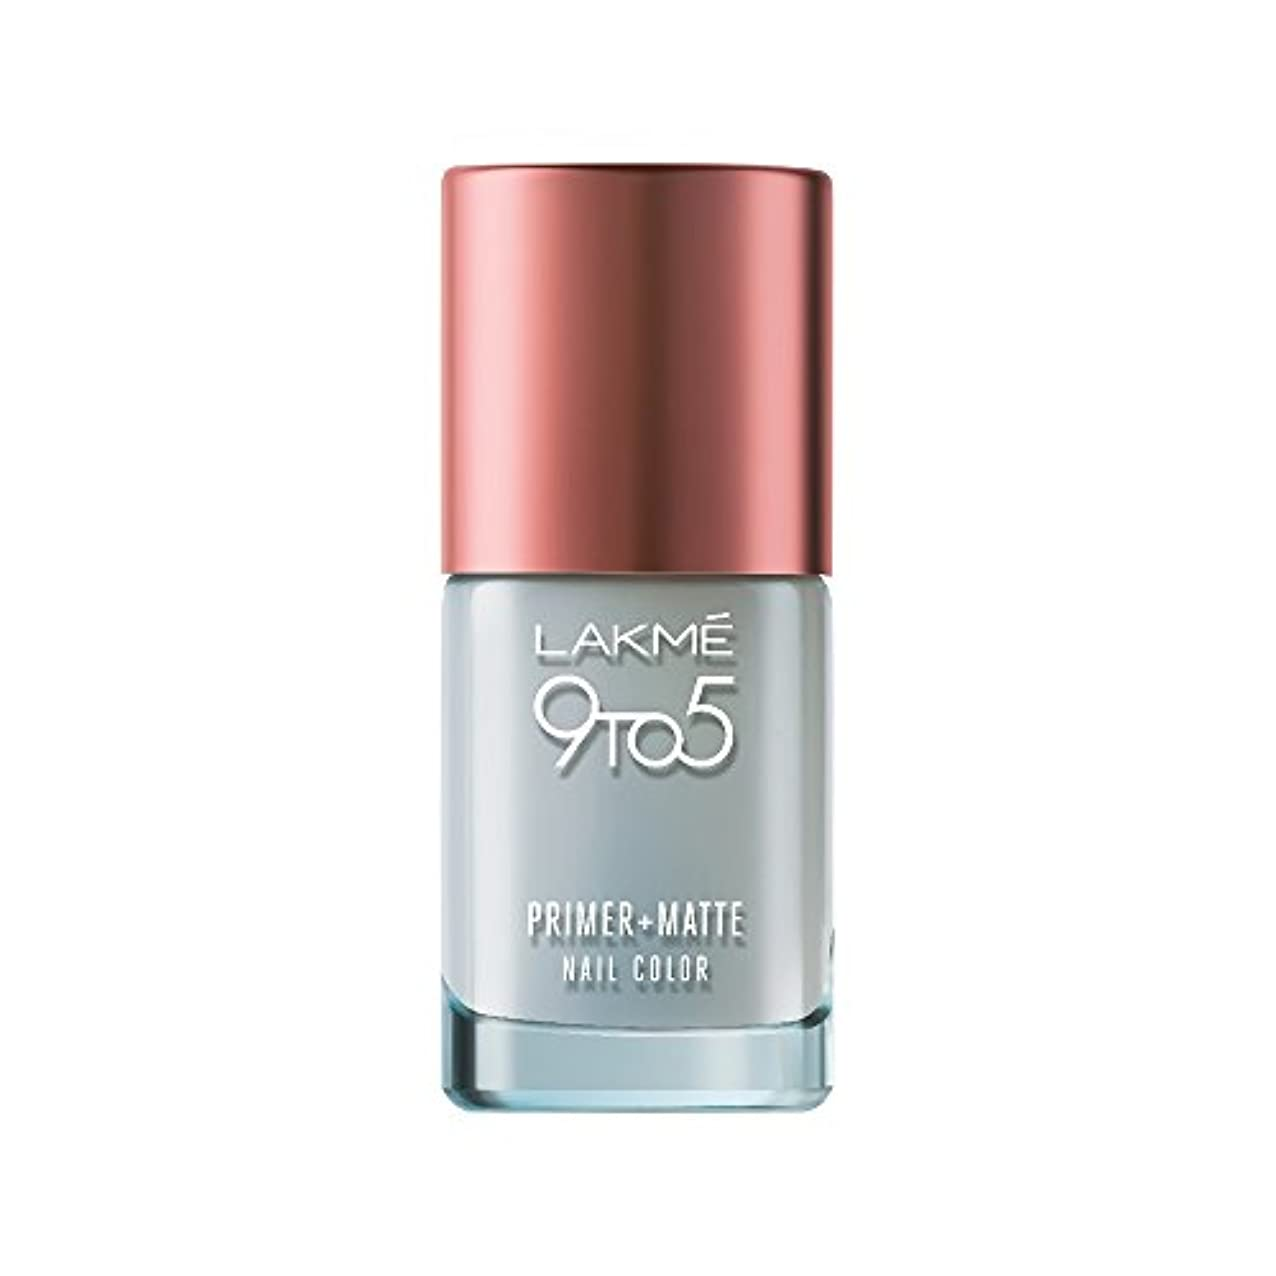 Lakme 9 to 5 Primer and Matte Nail Topcoat, Clear, 9ml